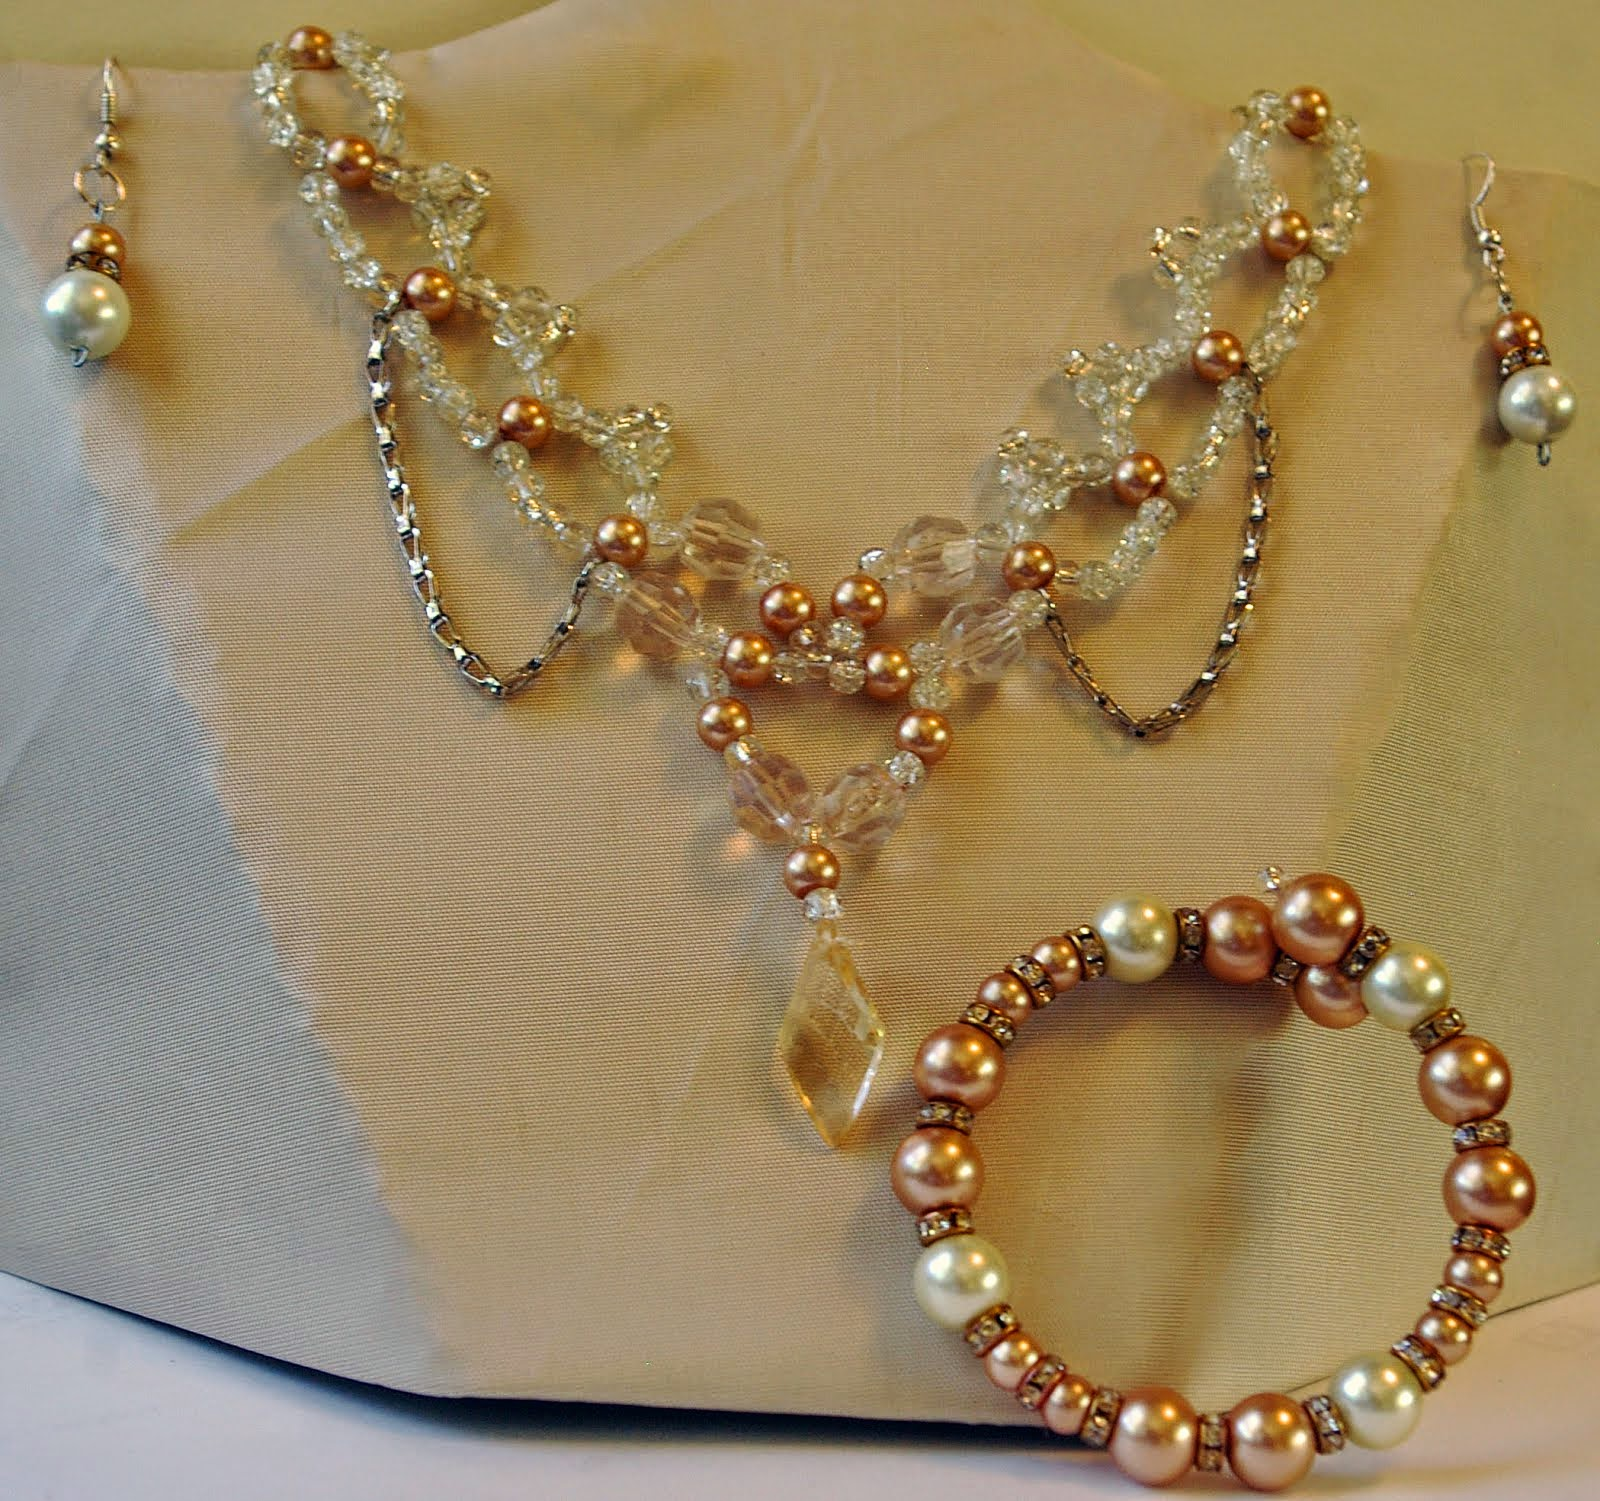 Bridal necklace with bracelet and earrings